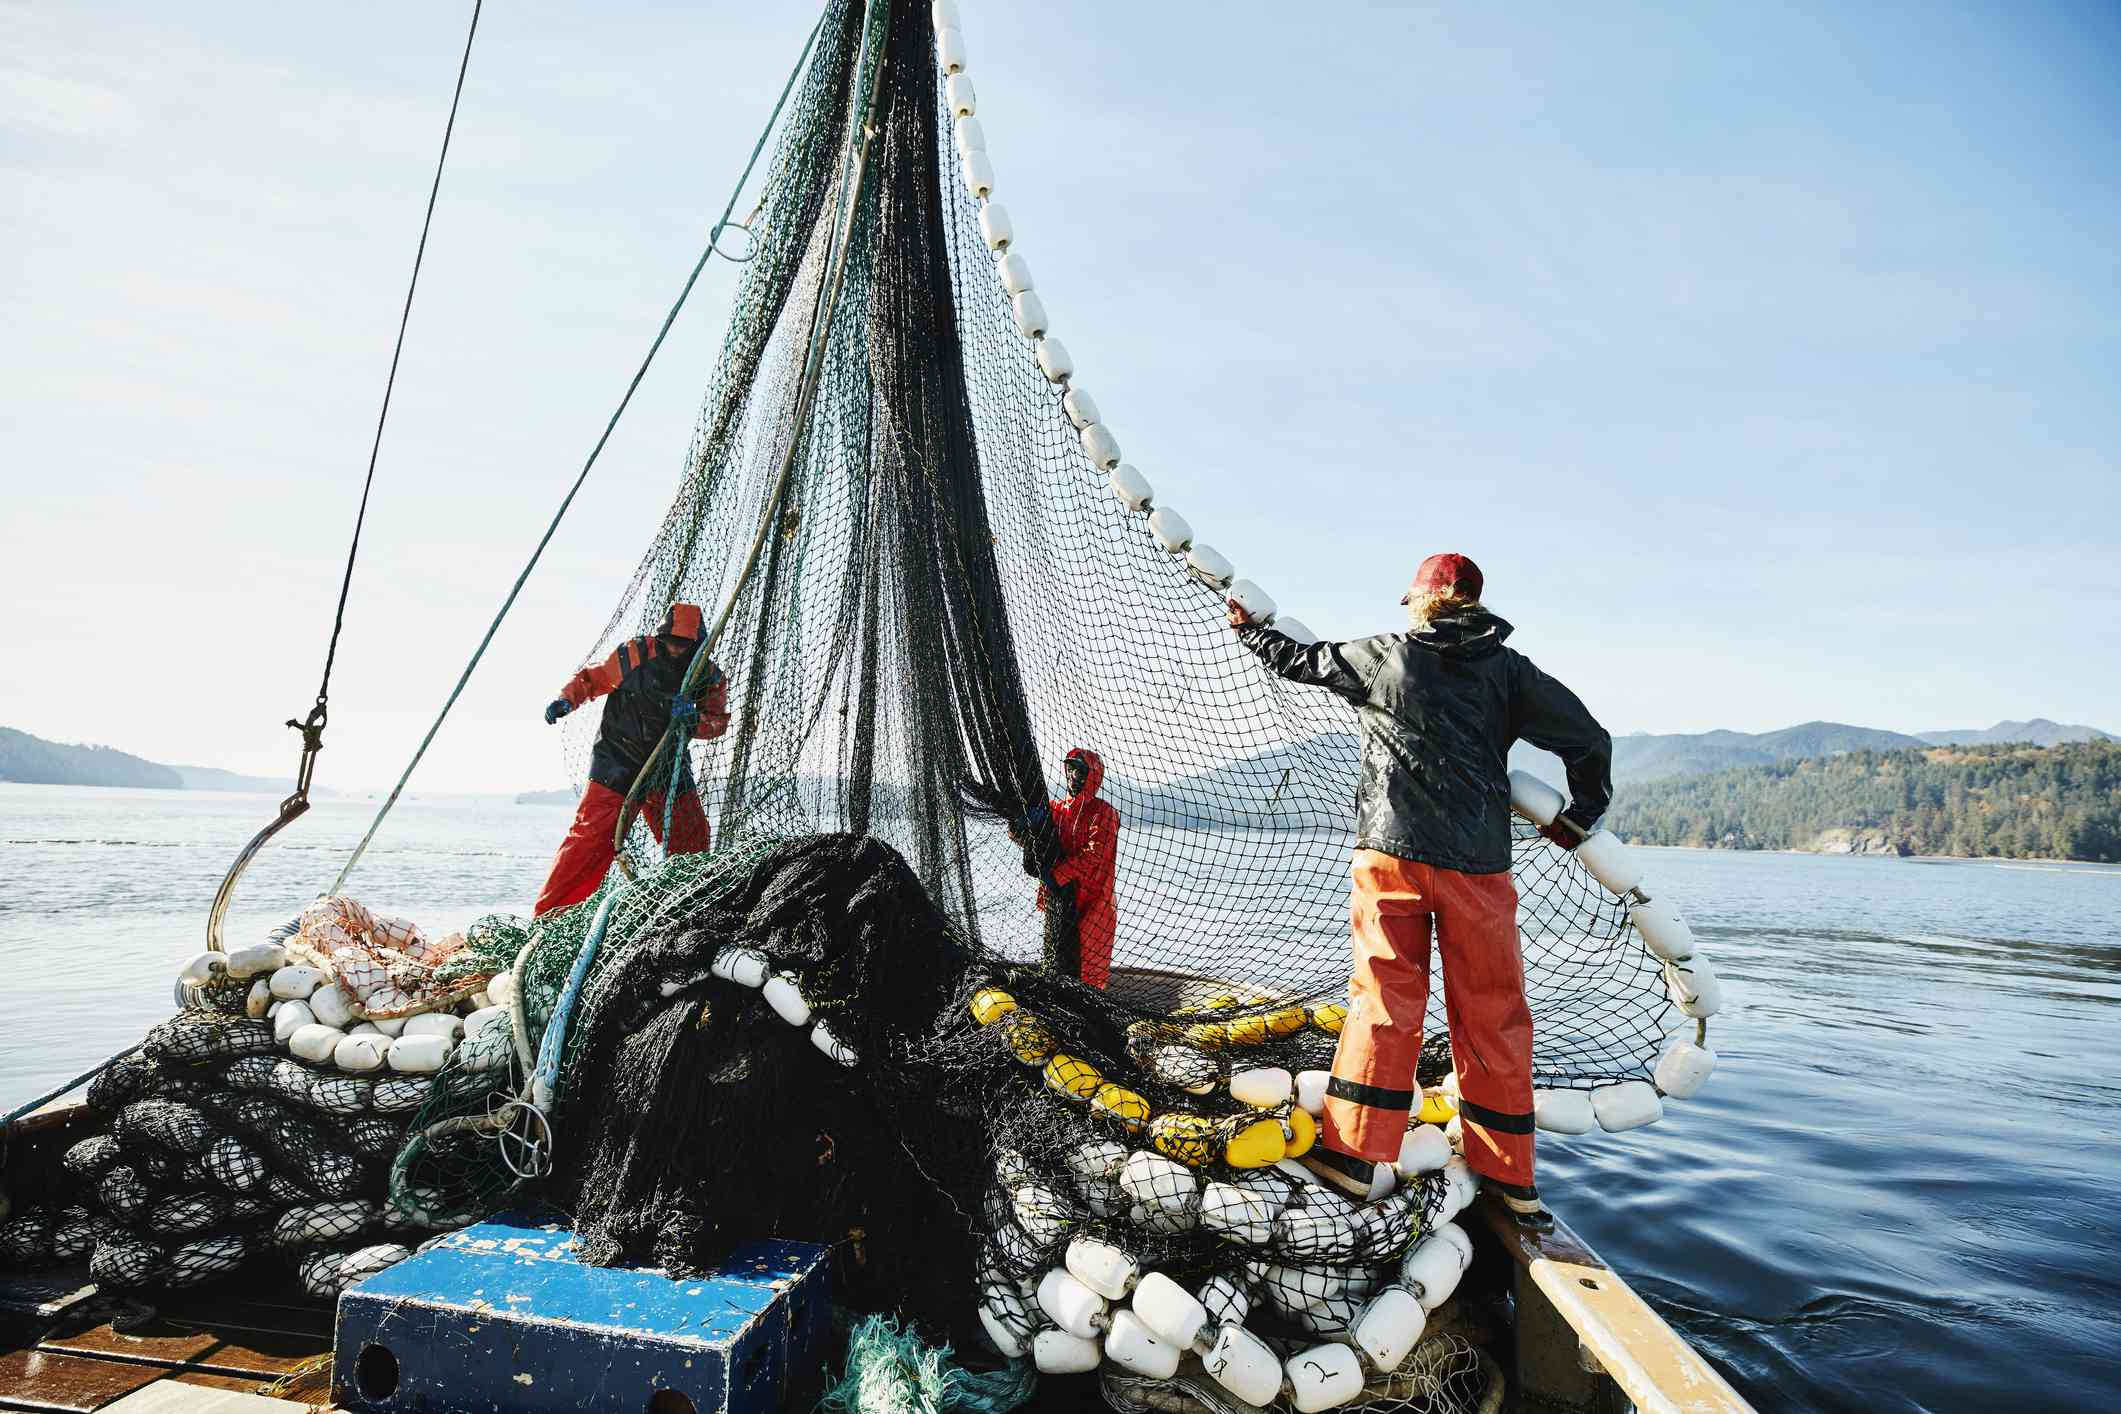 Fishers maneuvering a fishing net on a commercial fishing vessel.